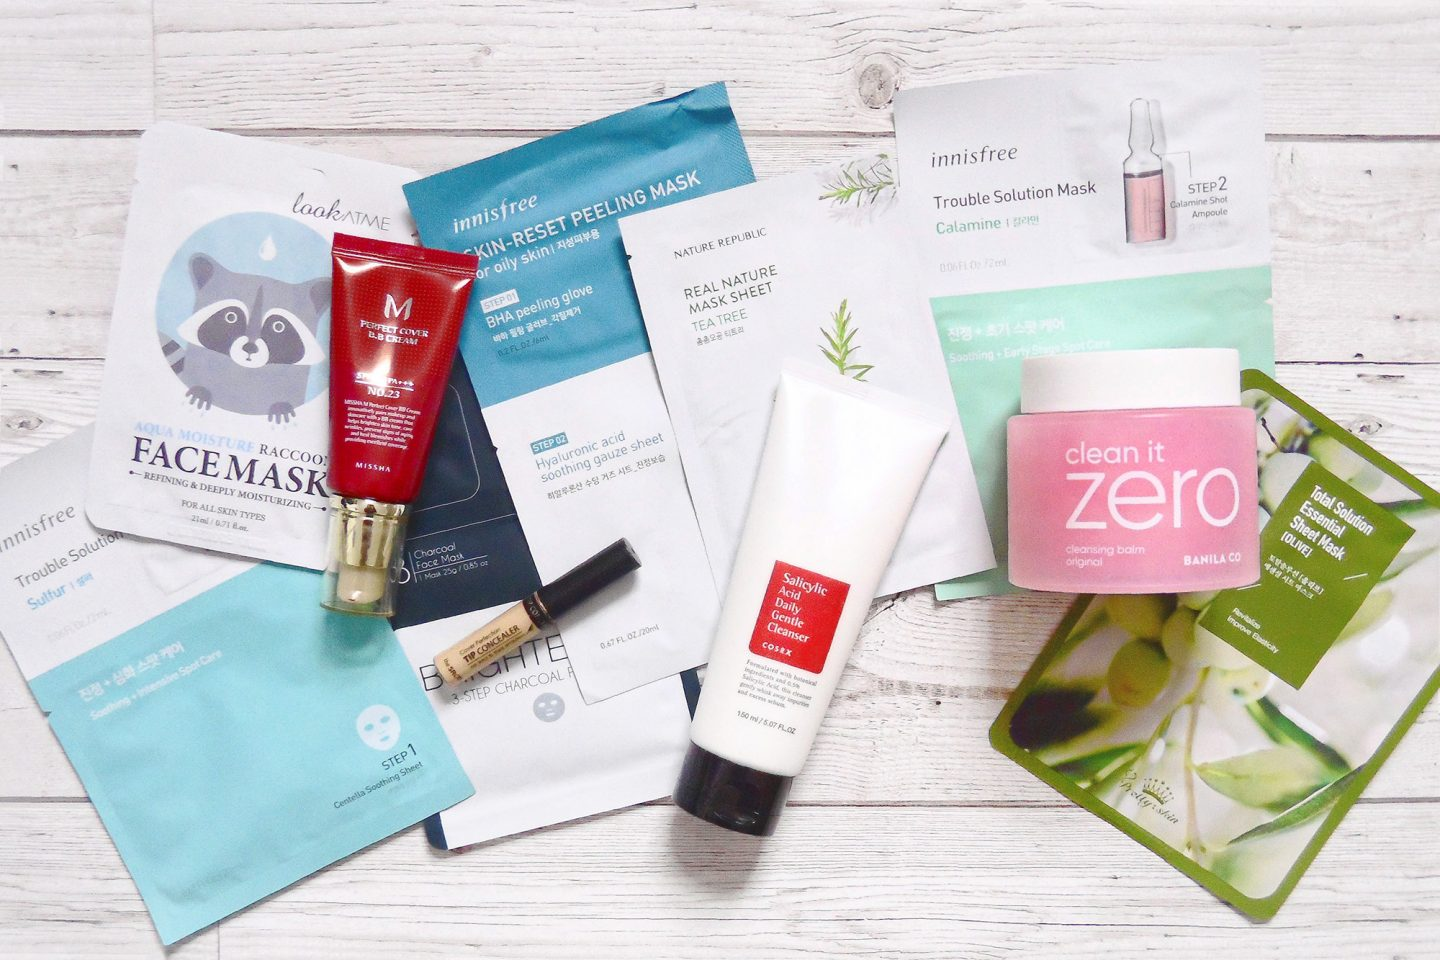 korean beauty skincare makeup products missha m perfect cover bb cream saem cover perfection tip concealer cosrx salicylic acid daily gentle cleanser banila co clean it zero cleansing balm innisfree sheet masks